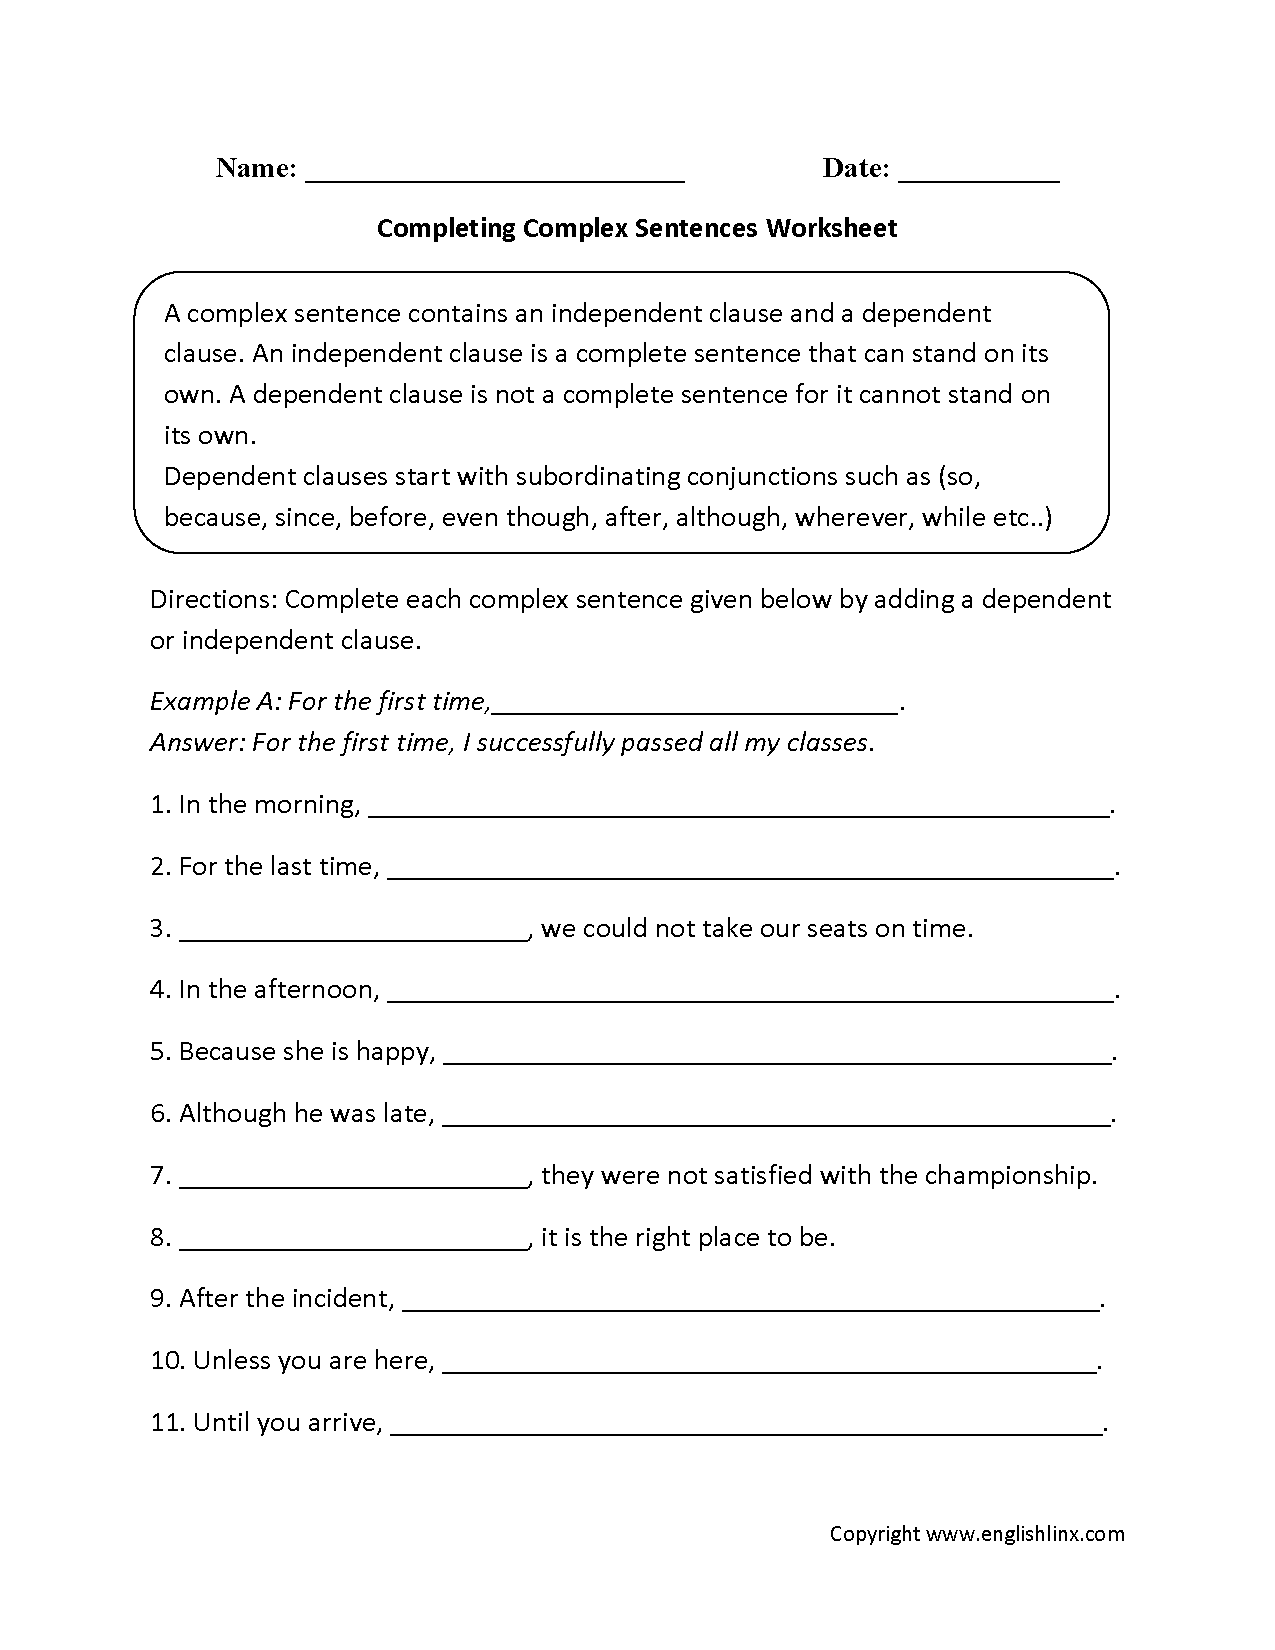 Sentences Worksheets   Complex Sentences Worksheets   Complex sentences [ 1650 x 1275 Pixel ]